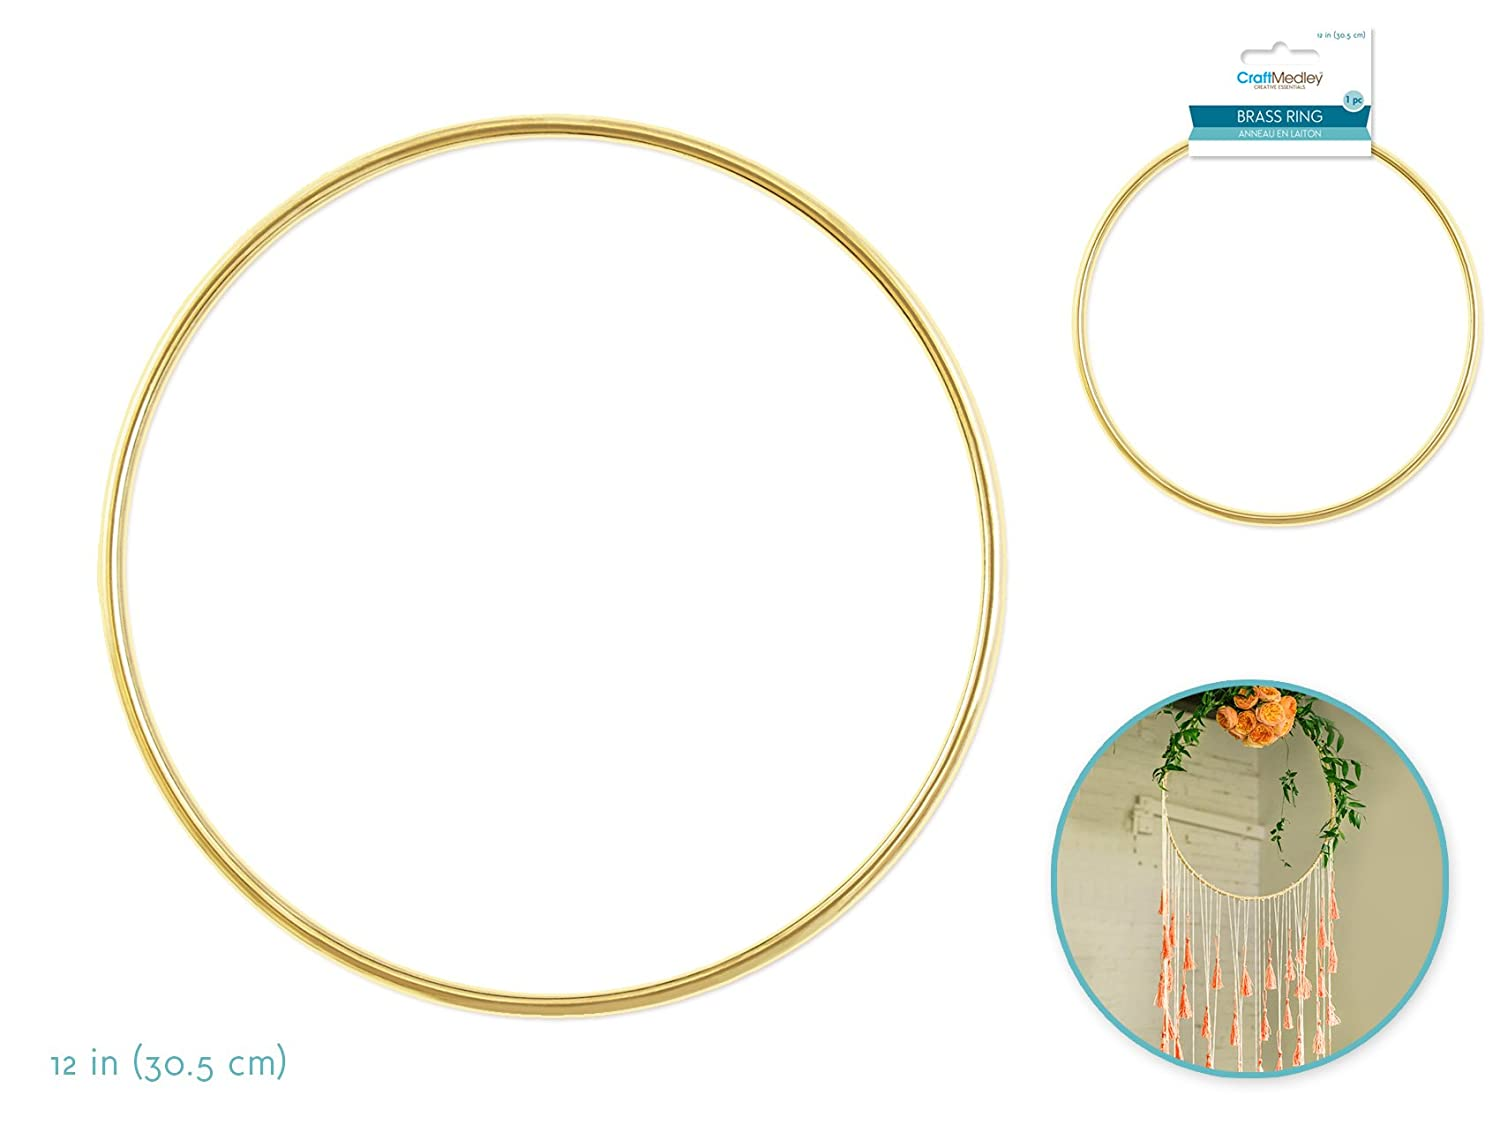 Round Large Metal Rings Hoops 8in + 12in + 14in + 14in Brass Metal Rings for Craft Macrame Dream Catcher Floral Jewelry Making Brass Rings